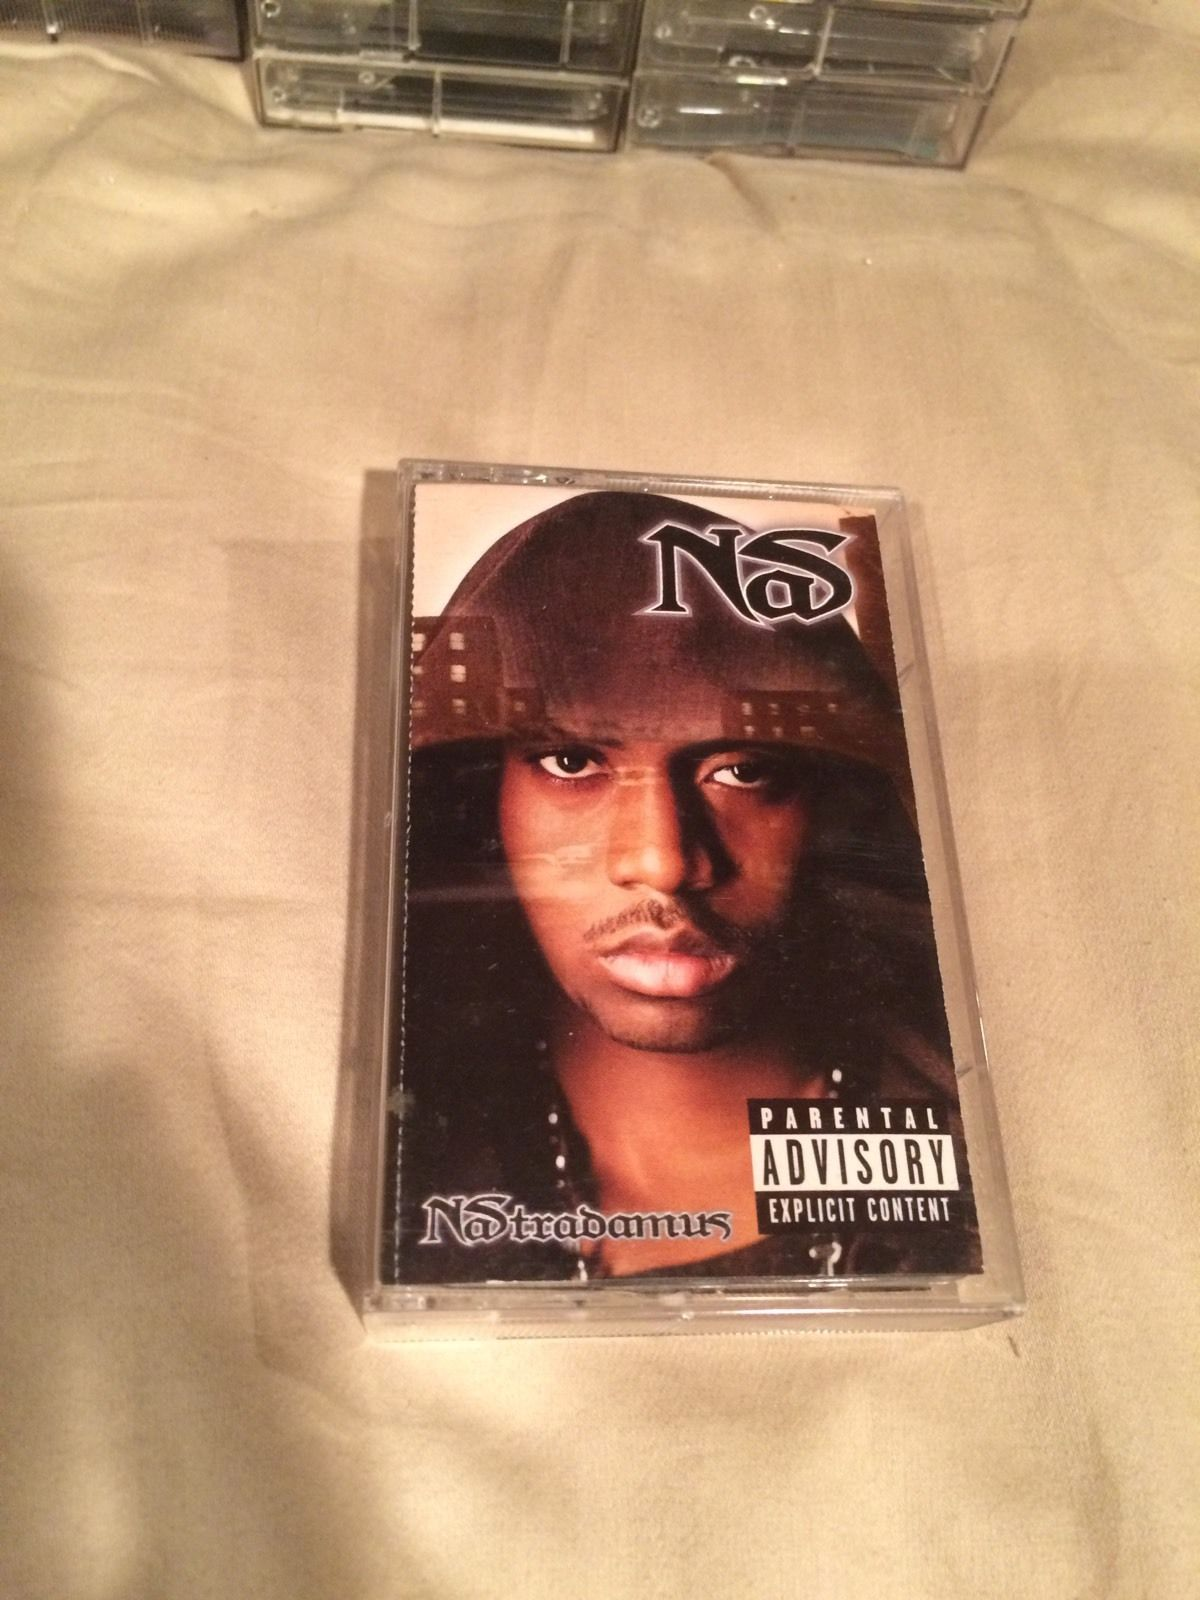 USED Cassette Nas Nastradamus Sony Music Entertainment 1999 - VinylBay777